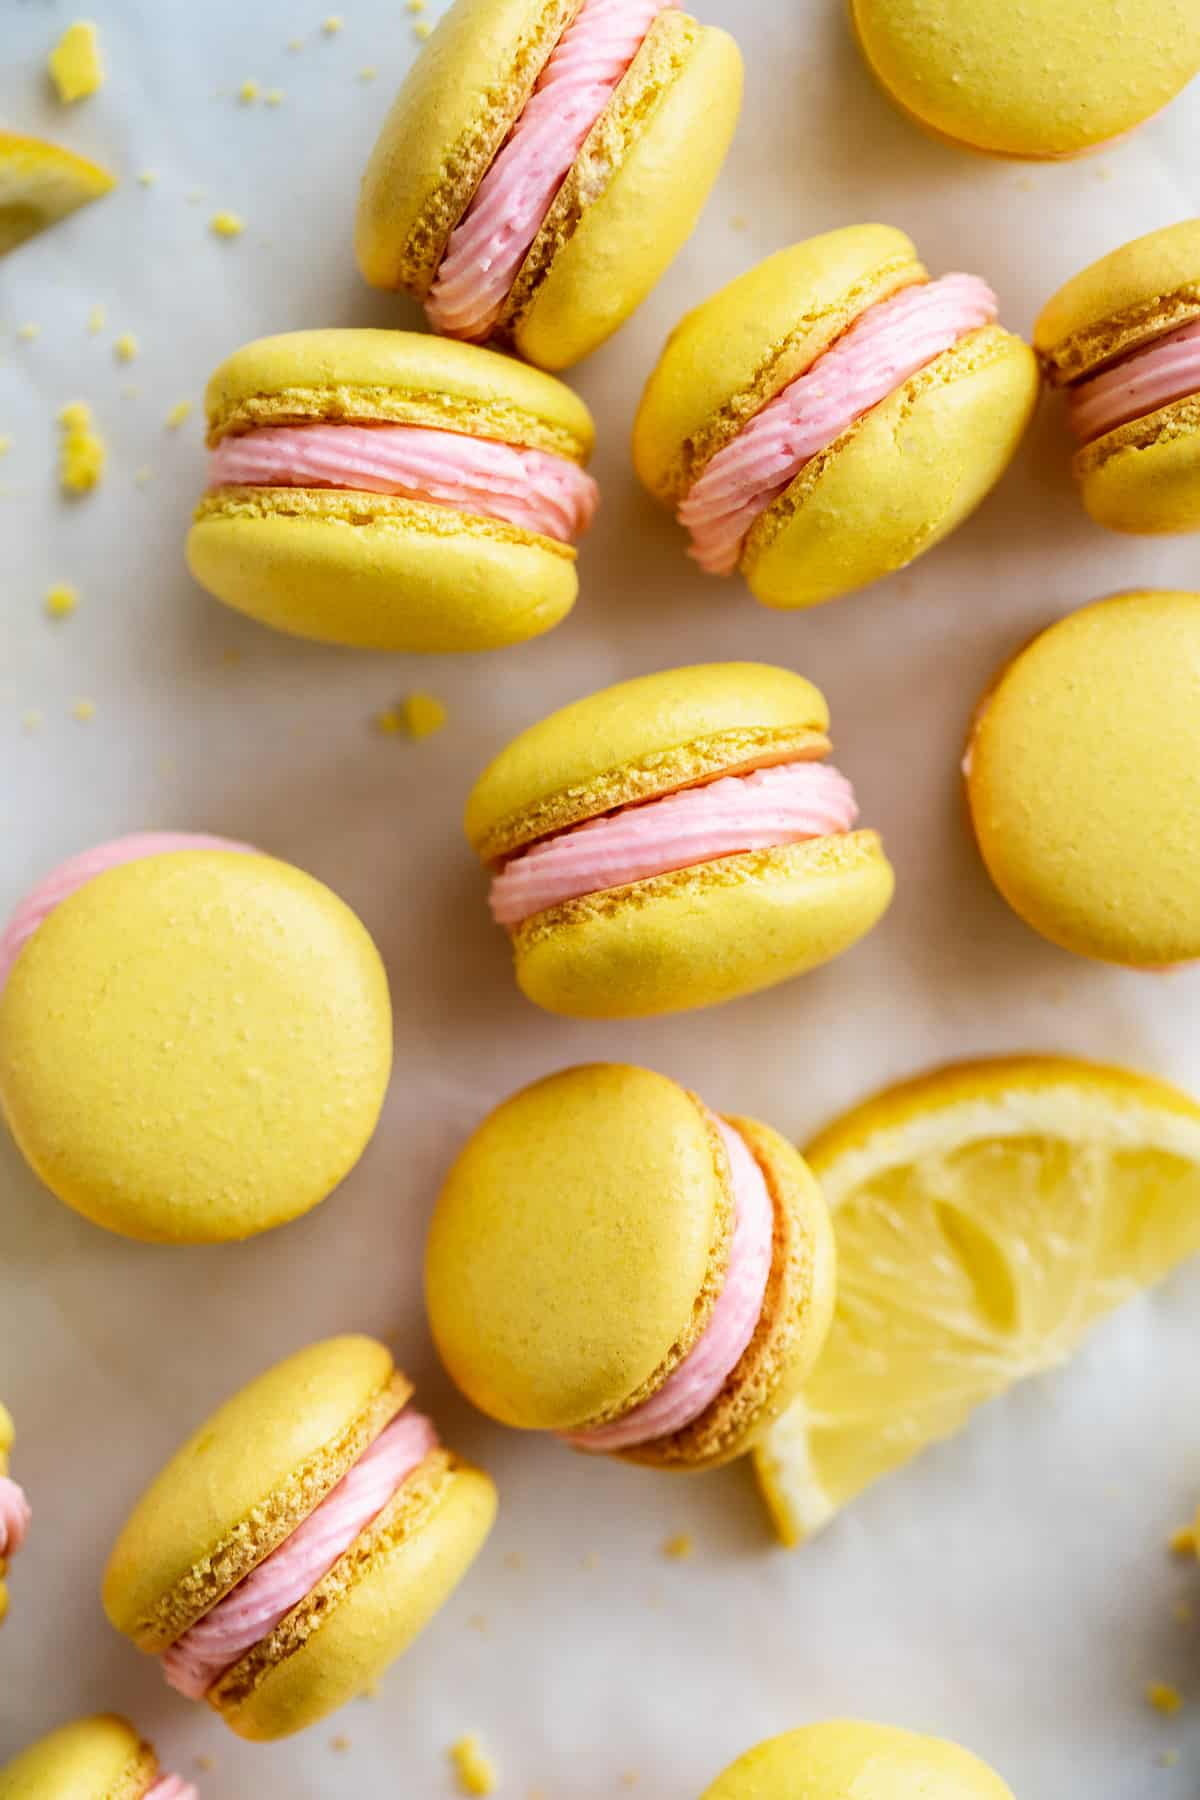 Pink lemonade macarons scattered on a white surface.